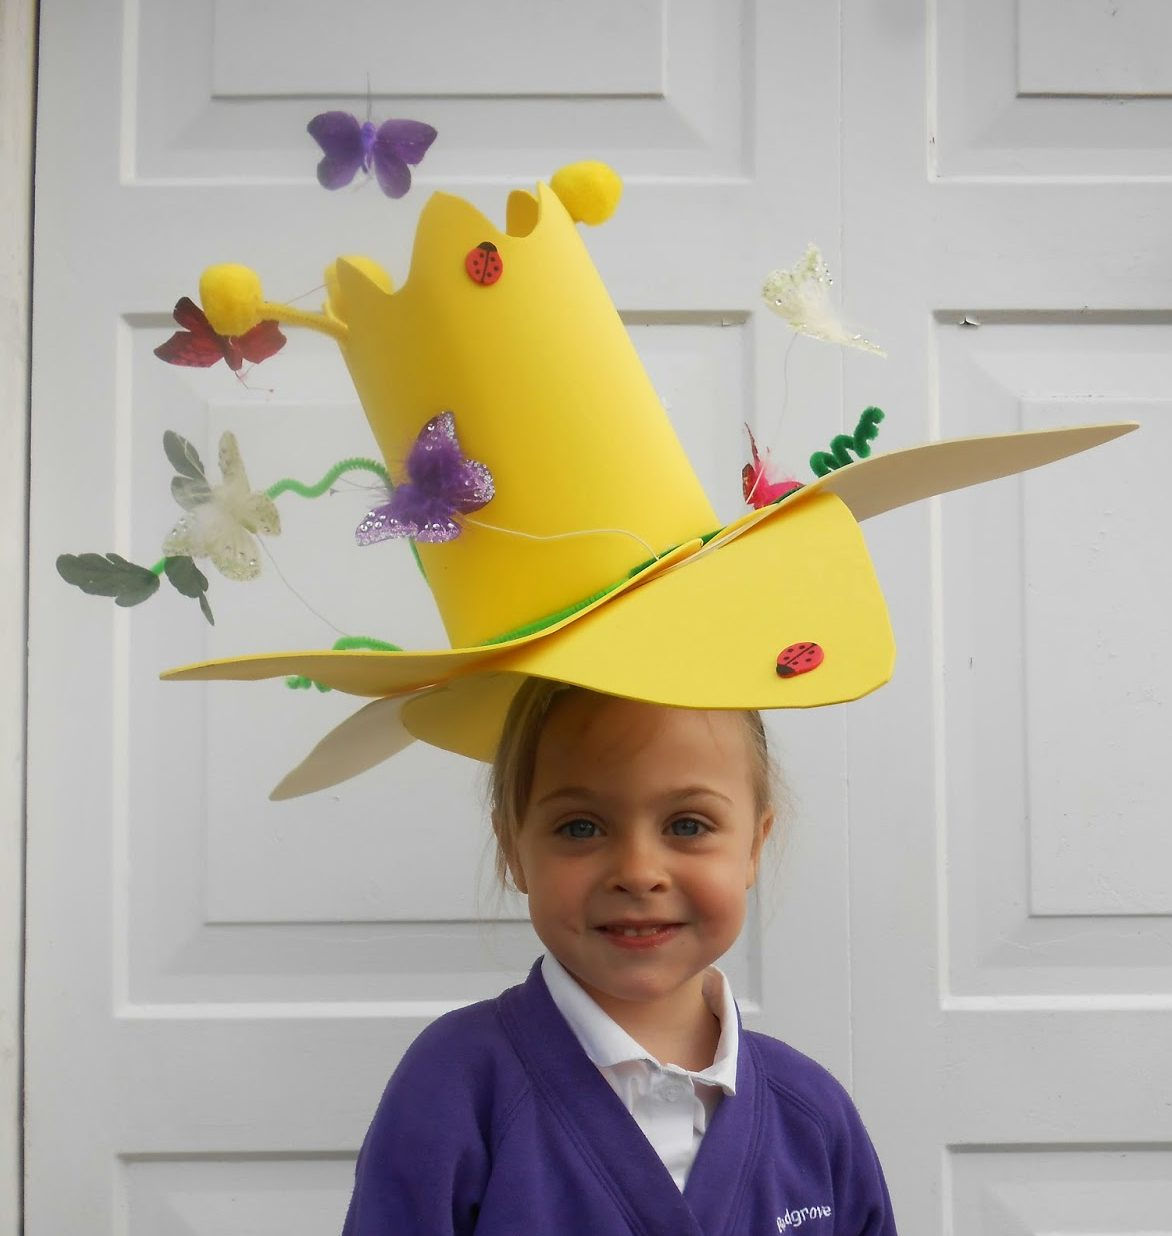 Crazy Hat Ideas For Adults: 20 Easter Hat Parade Ideas